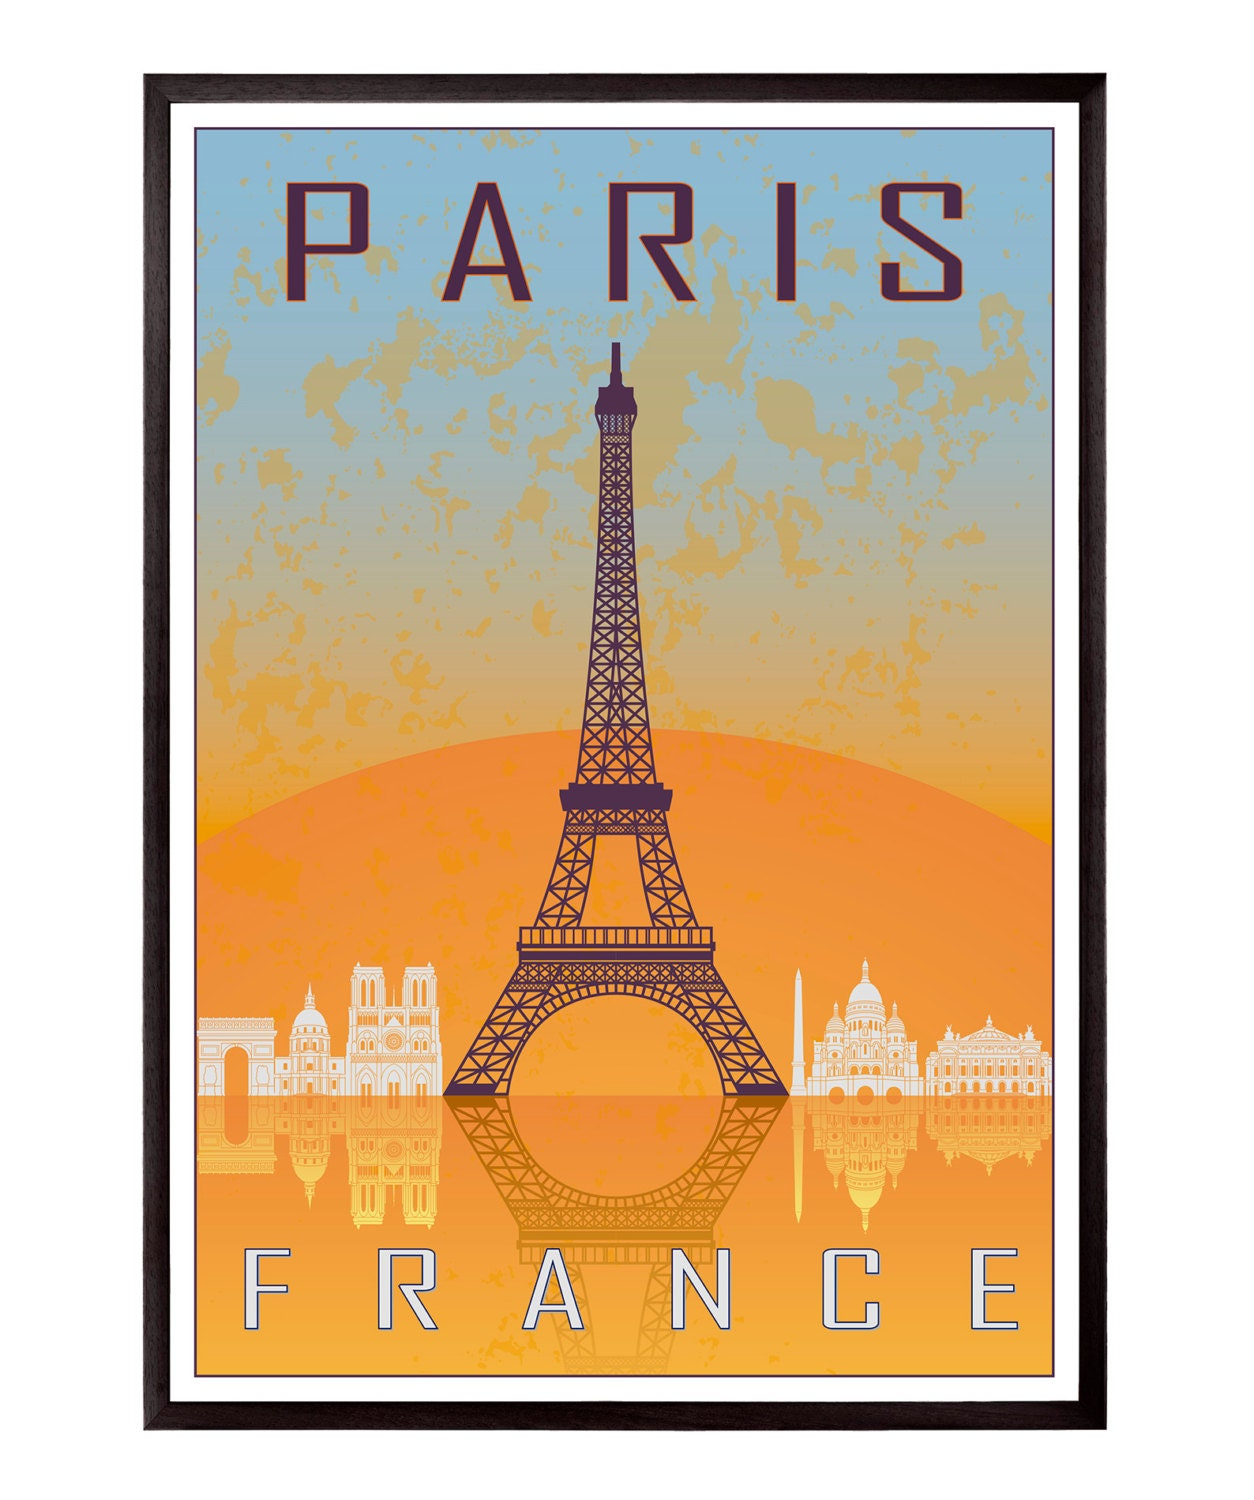 paris vintage style poster sku 0924. Black Bedroom Furniture Sets. Home Design Ideas